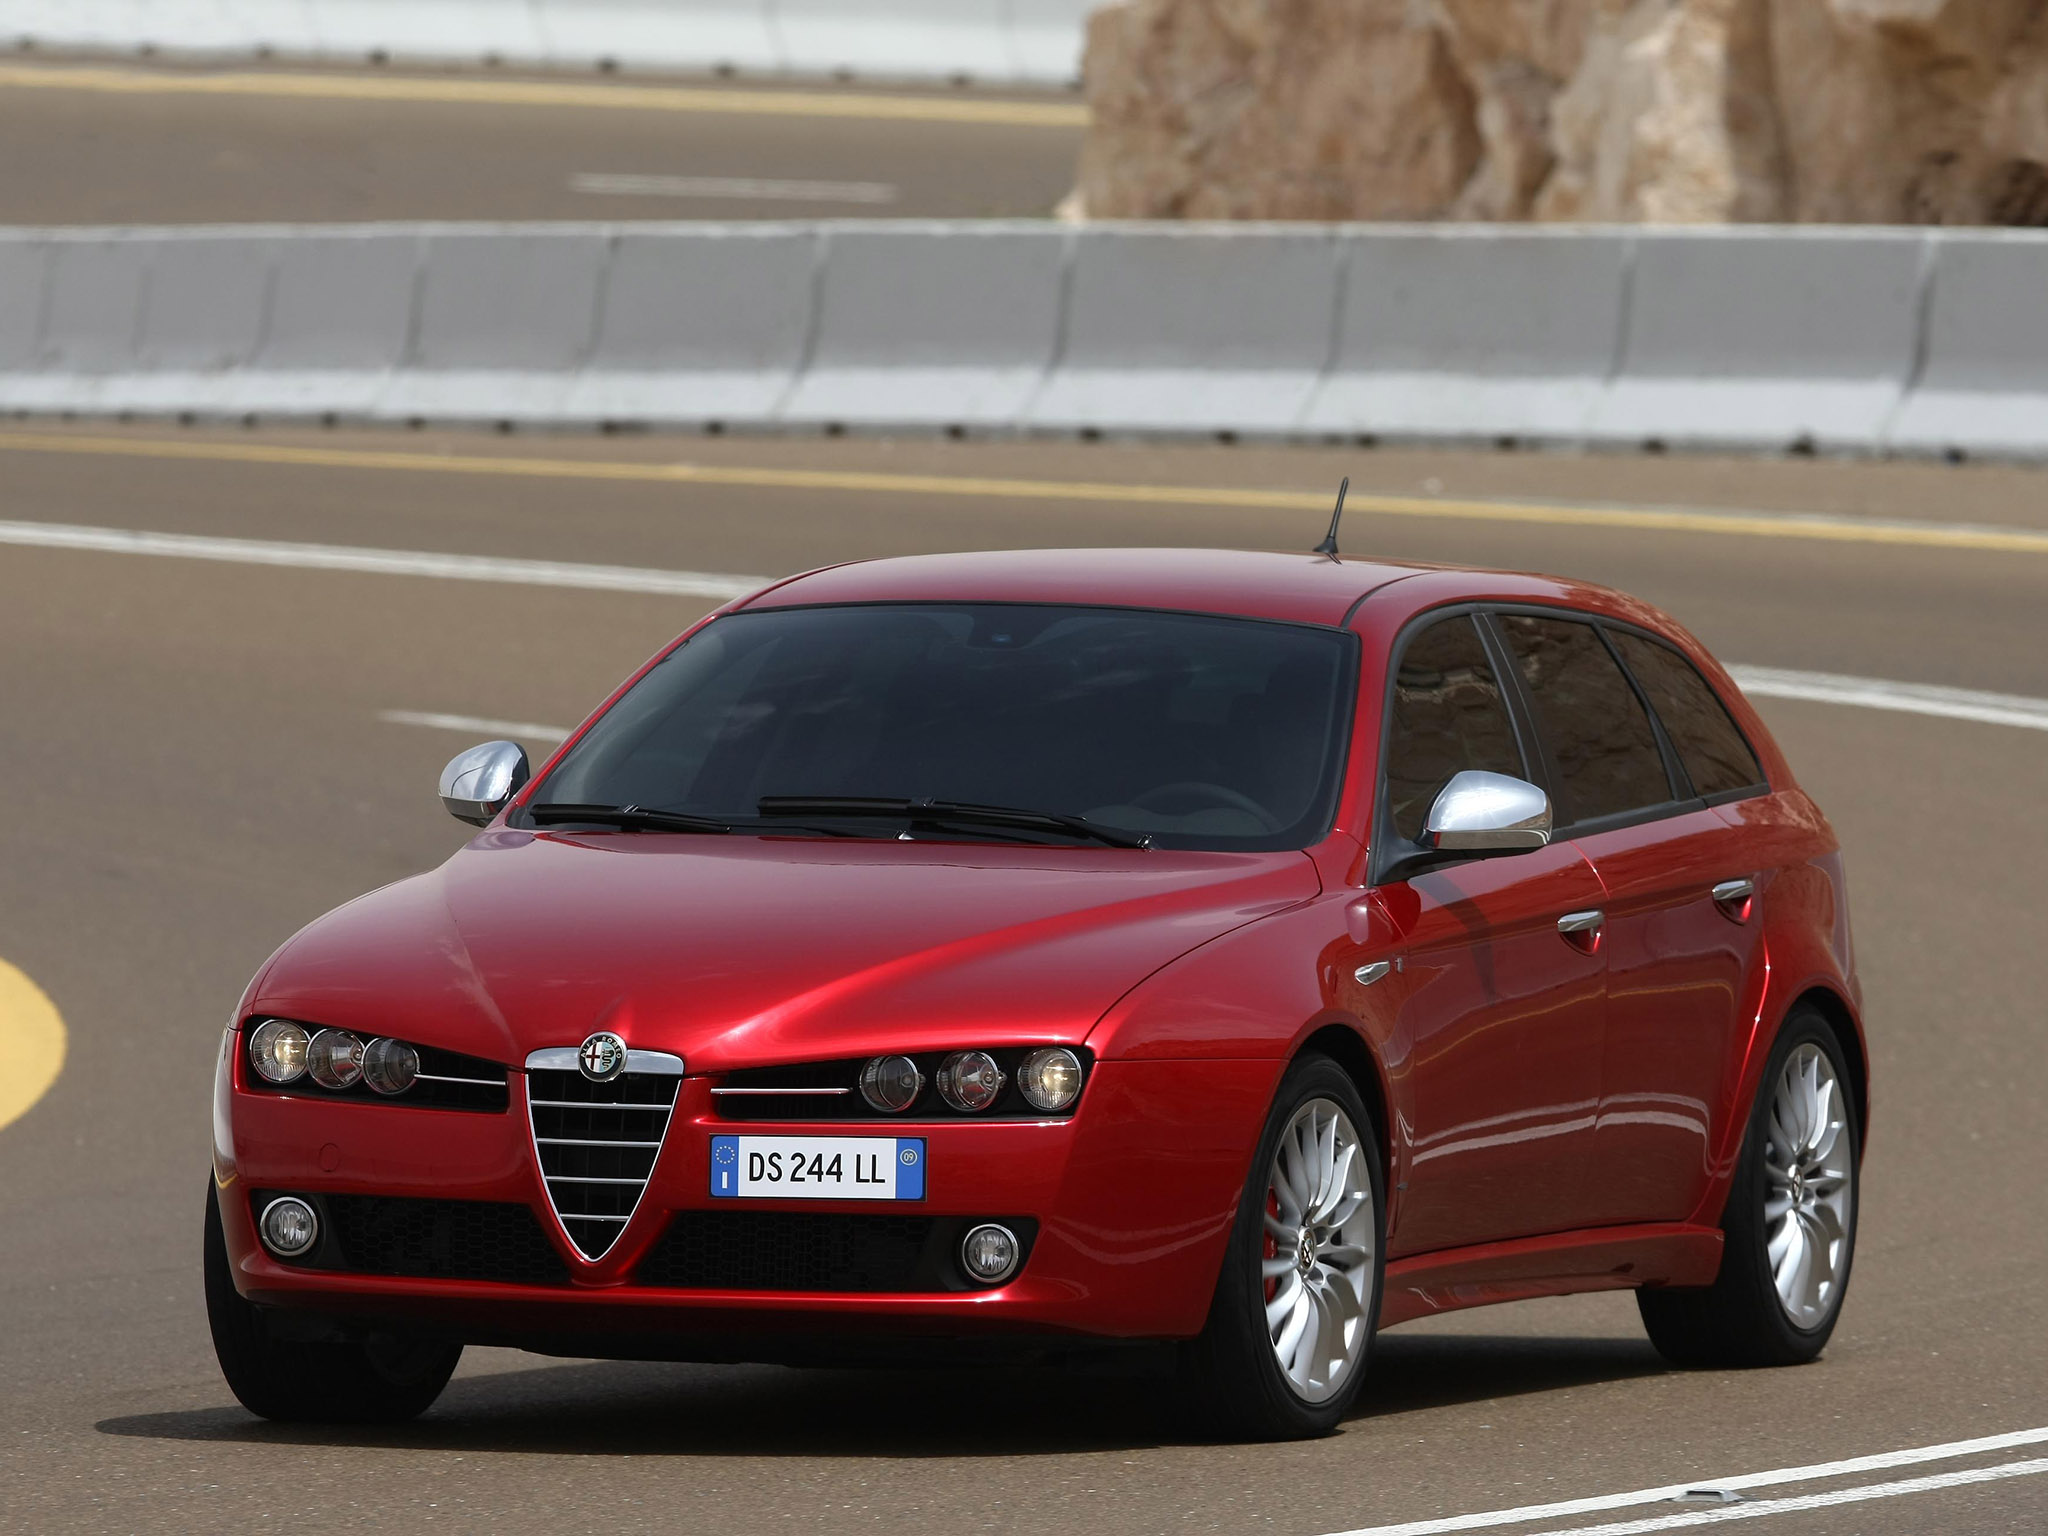 alfa romeo 159 sw 2009 alfa romeo 159 sw 2009 photo 33 car in pictures car photo gallery. Black Bedroom Furniture Sets. Home Design Ideas